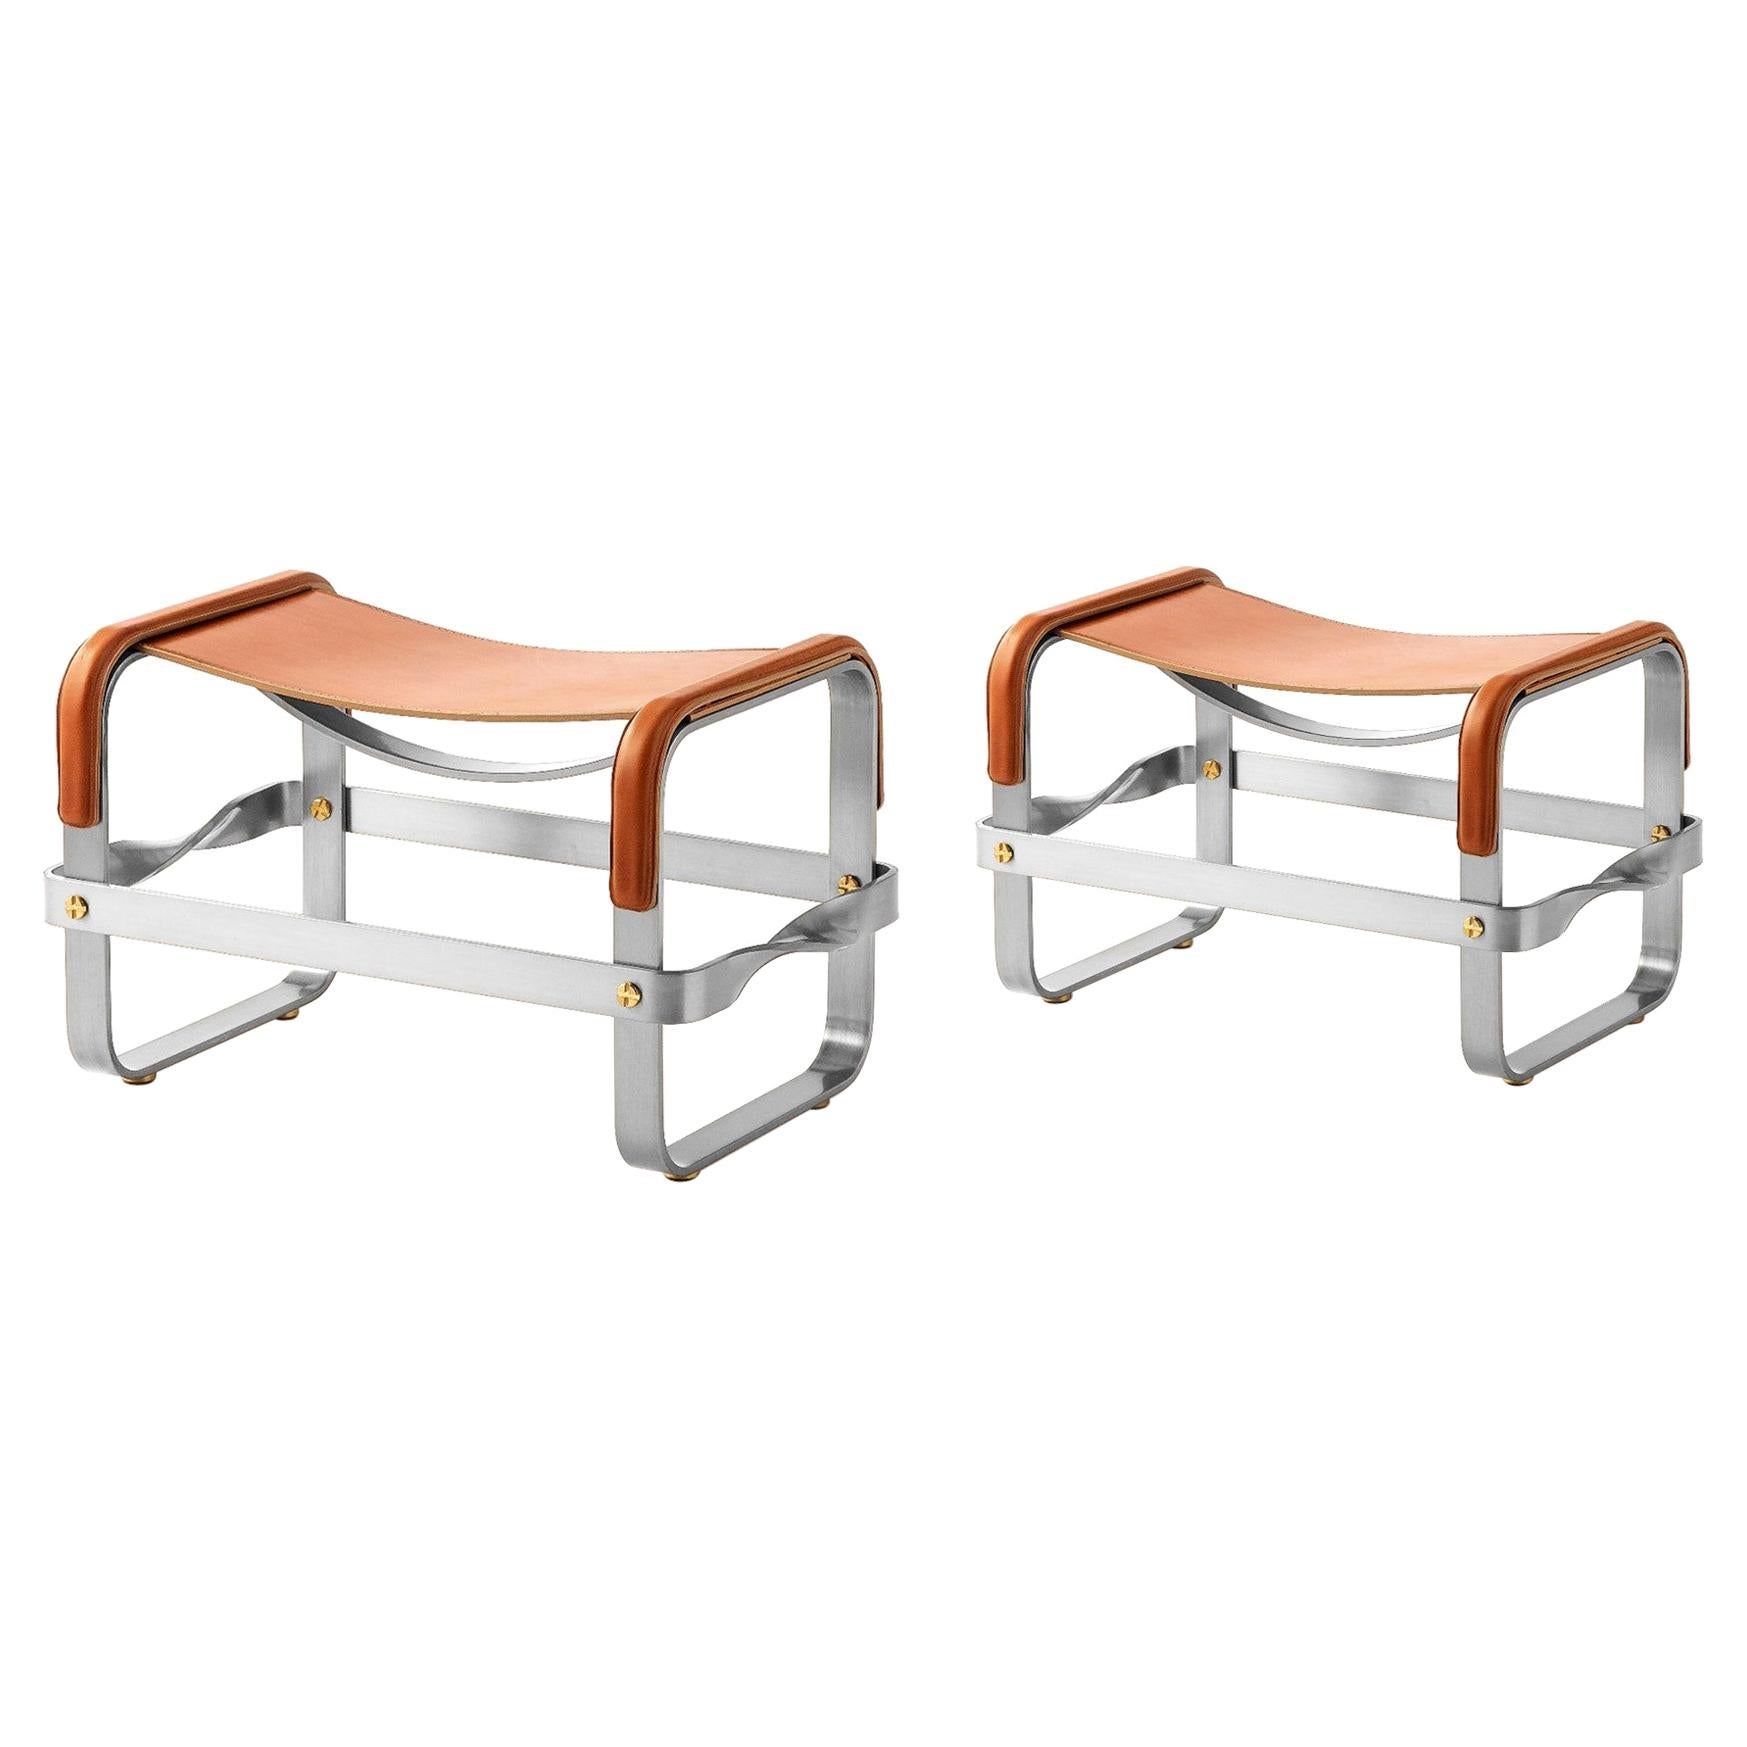 Set of 2 Footstool Old Silver Steel & Natural Tobacco Leather Contemporary Style